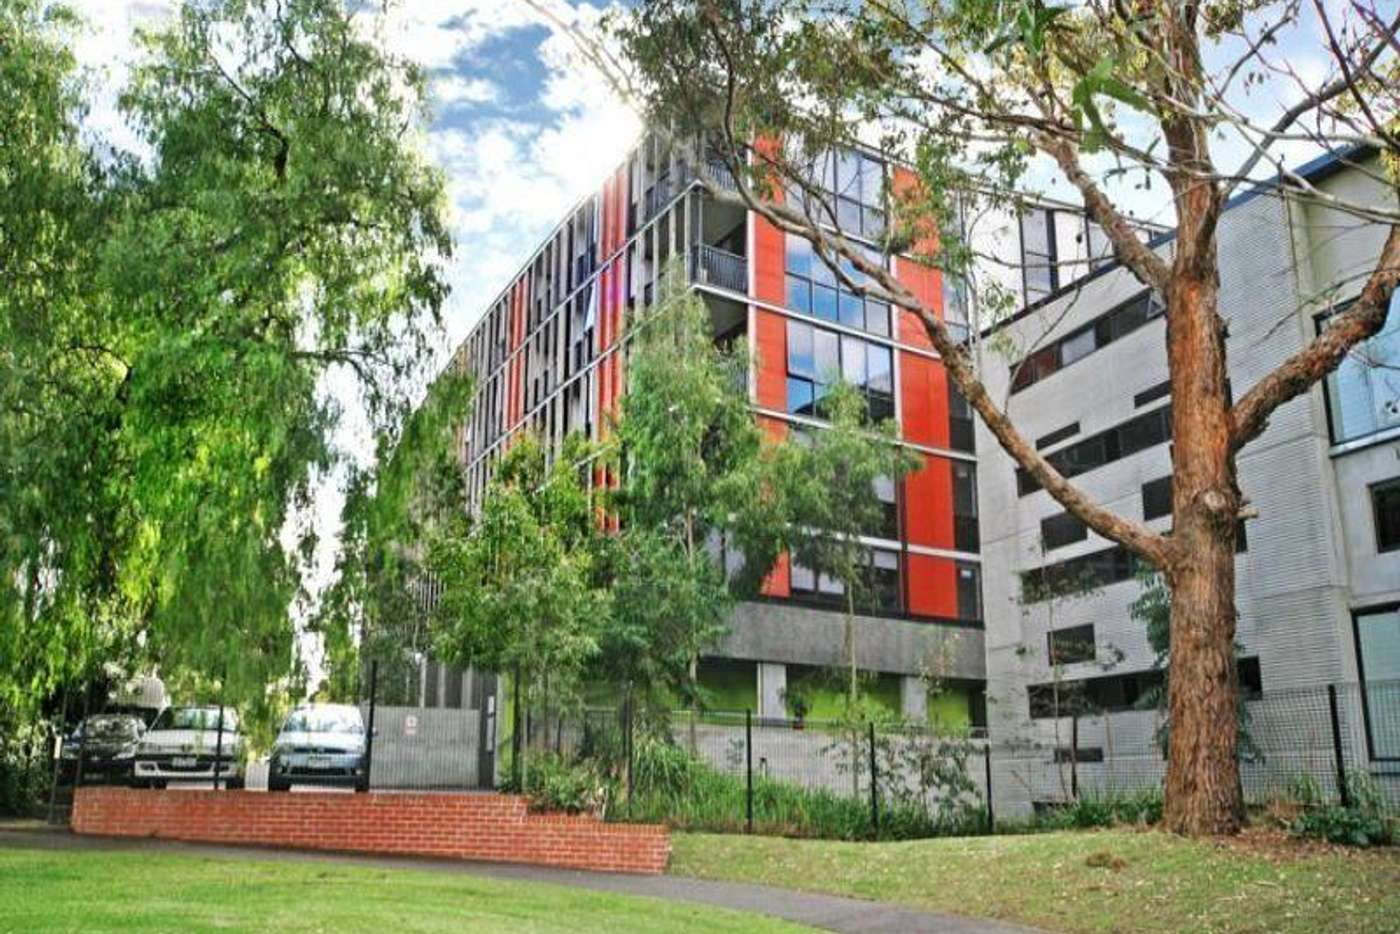 Main view of Homely apartment listing, 125/73 River Street, Richmond VIC 3121